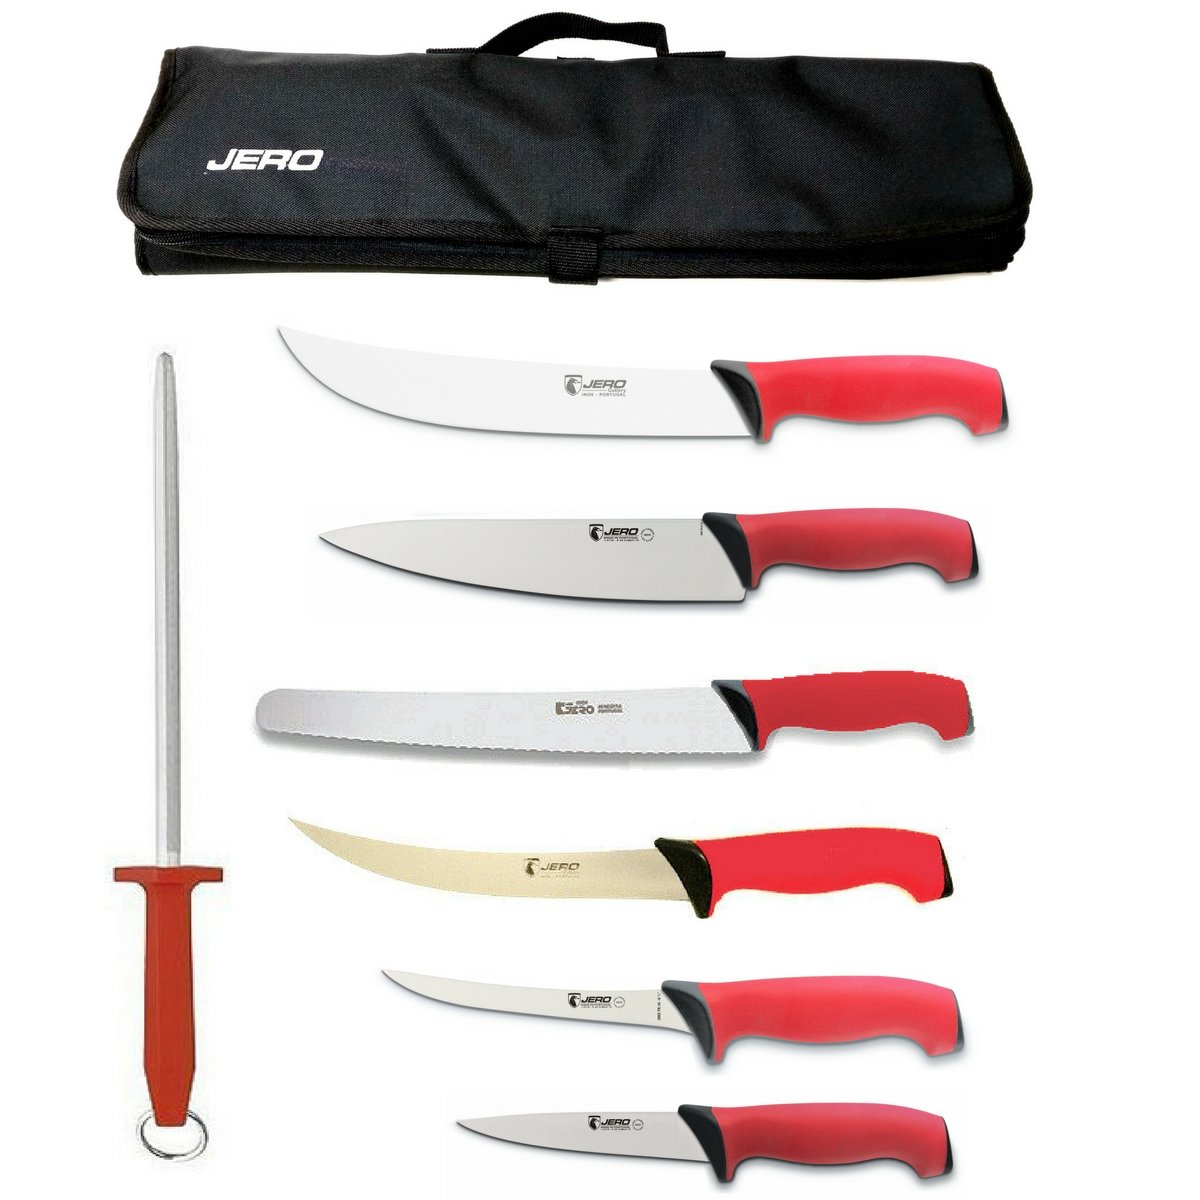 Jero TR Series 8 Piece Culinary And BBQ Knife Set Featuring Jero Knife Case And M.C.Cutlery Dual Cut German Made Steel - Commercial Grade Knives - German Stainless Steel Blades - Soft Grip Handles